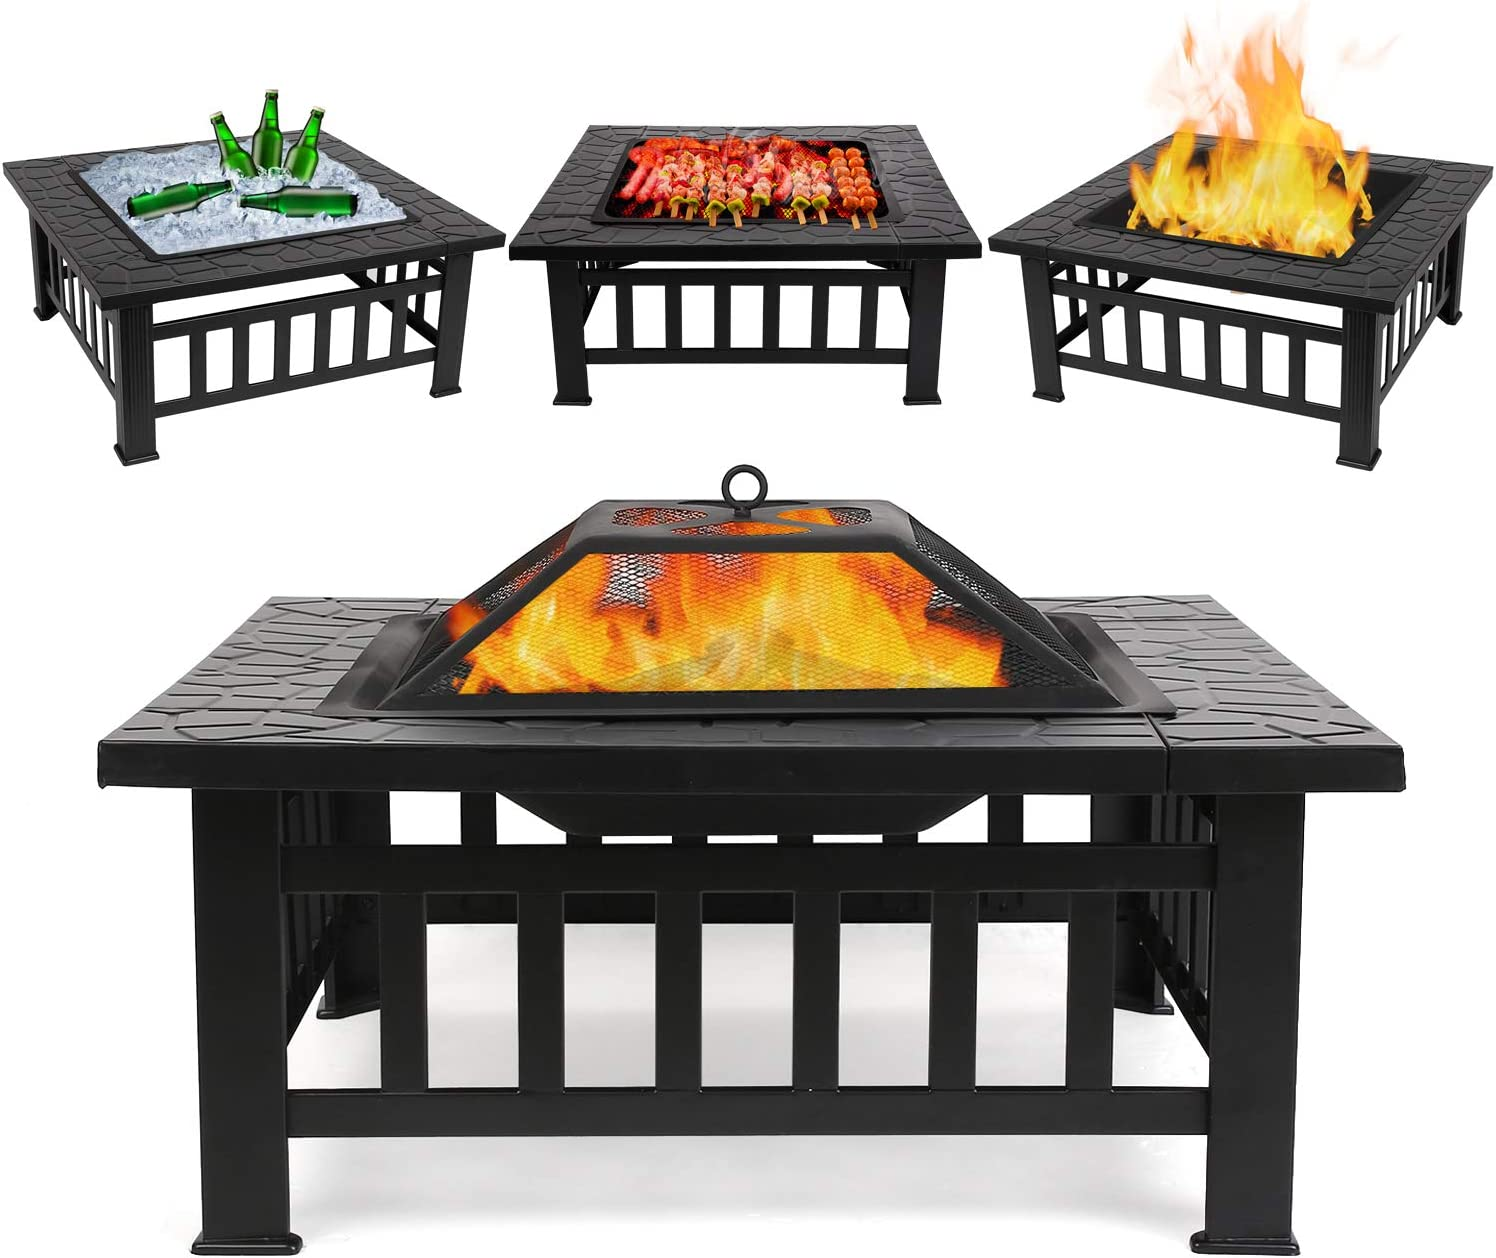 FIXKIT Fire Pit Table Outdoor with BBQ Grill Shelf, Multifunctional Garden Terrace Fire Bowl Heater BBQ Ice Pit, 32 Diameter Square Fireplace with Waterproof Cover